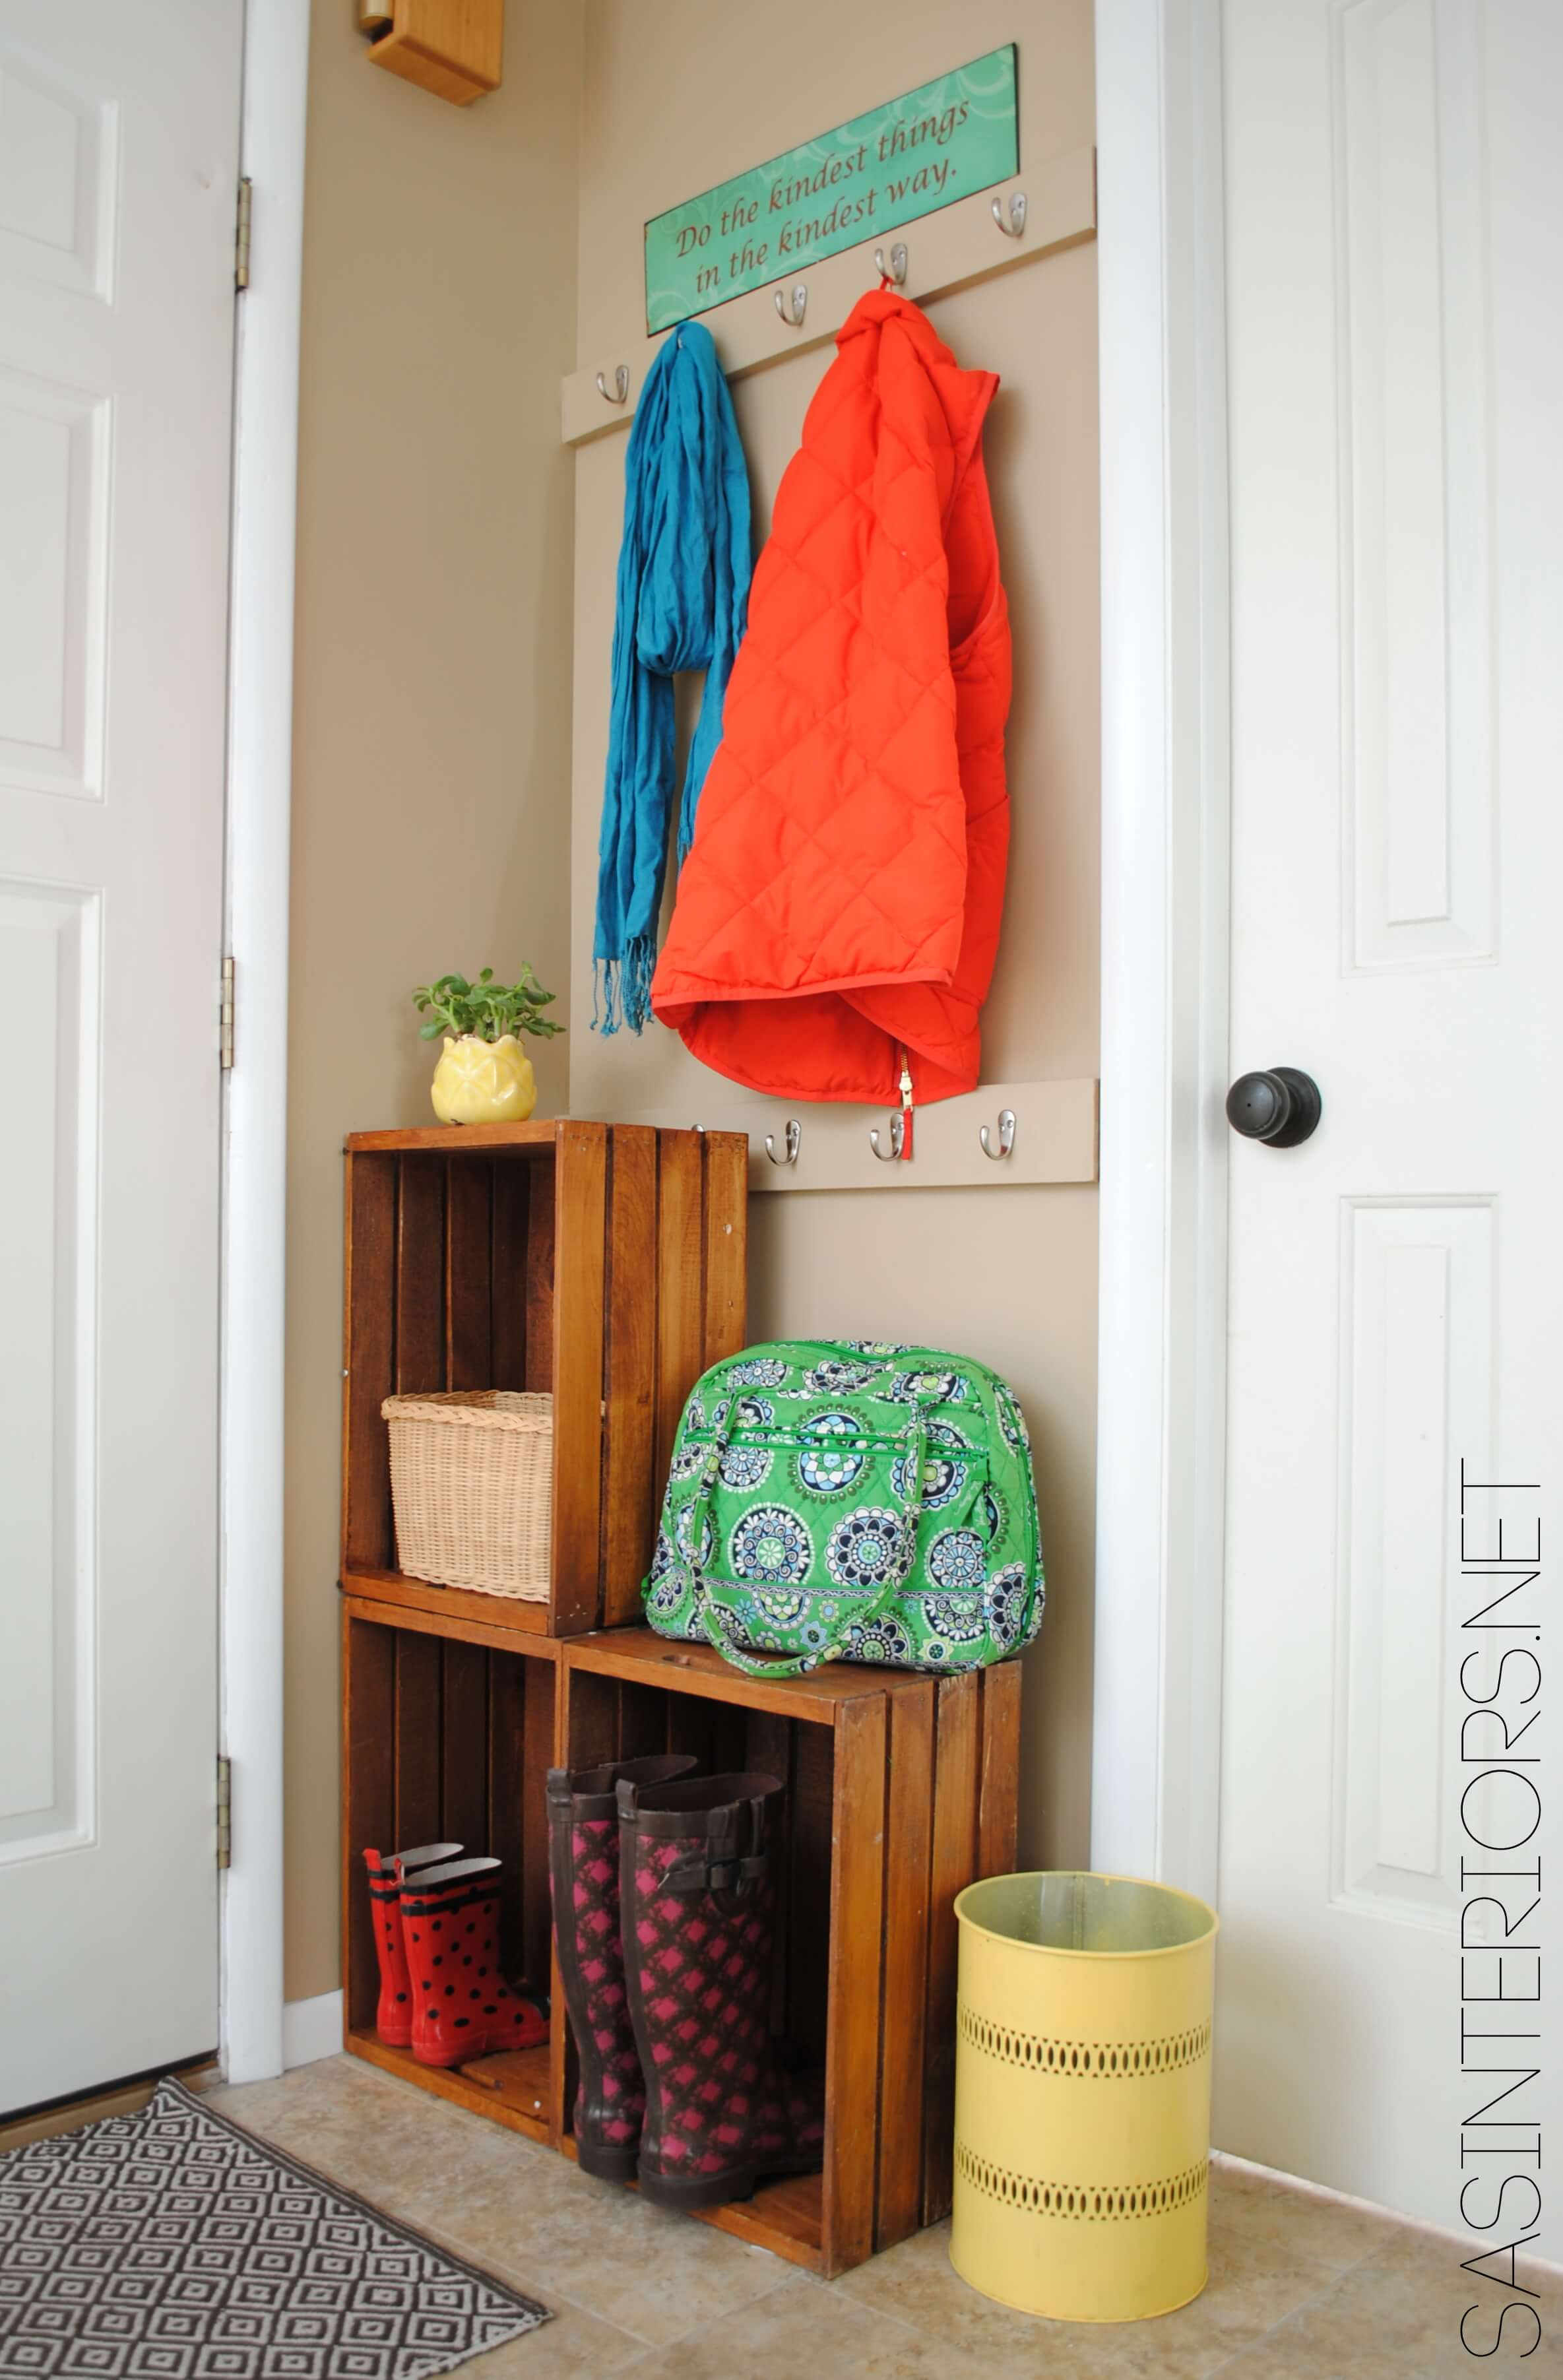 Stacked Crates Create Shelf Space in Tight Corner